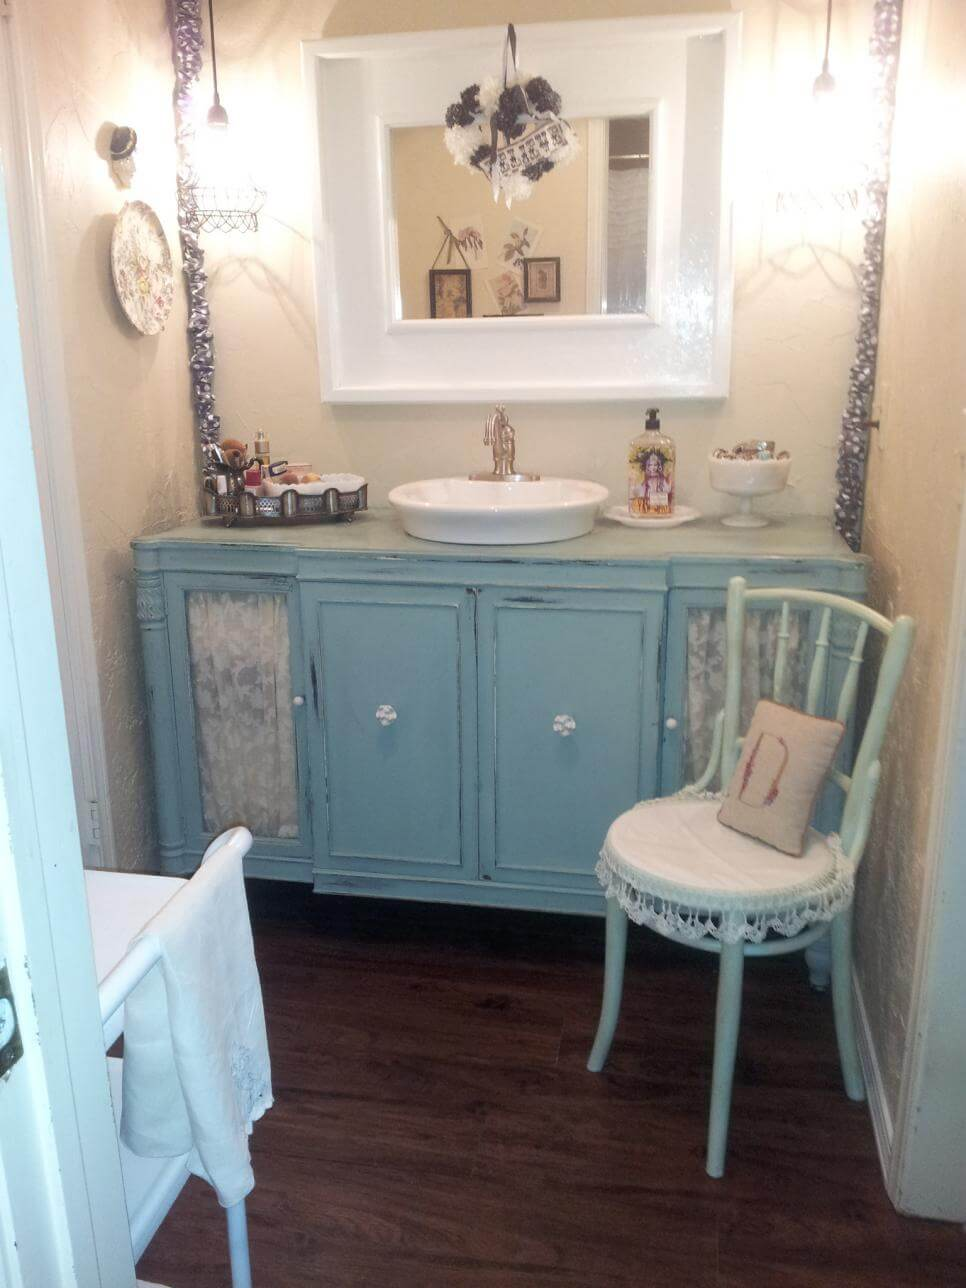 Shabby Chic Bathroom Vanity with Lace Features